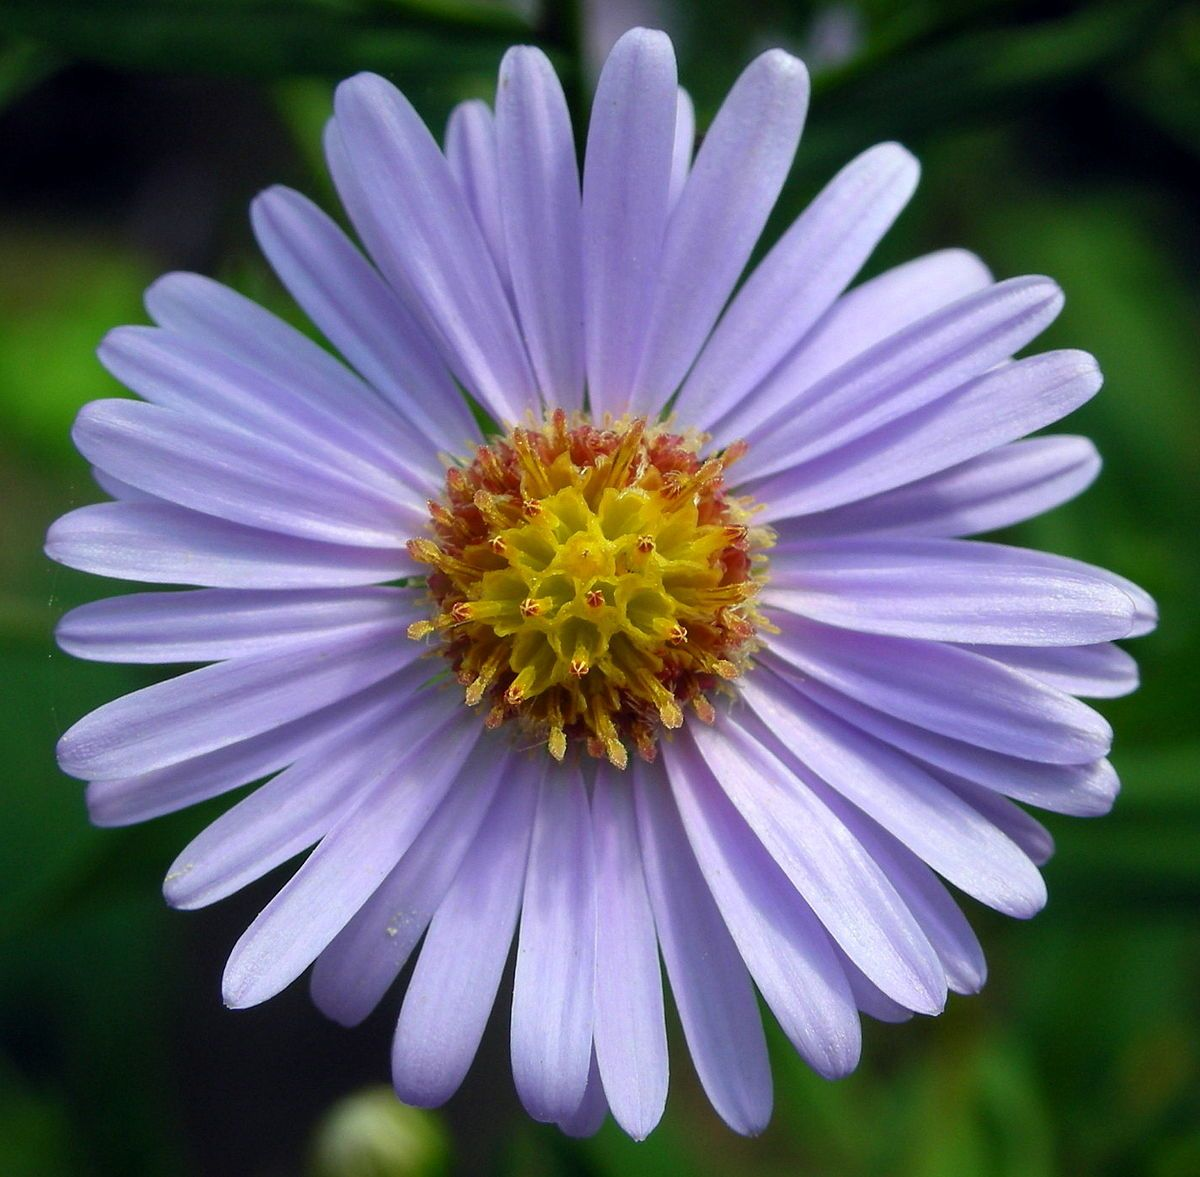 Aster Tataricus Wikipedia Flower Seeds Aster Flower Types Of Flowers